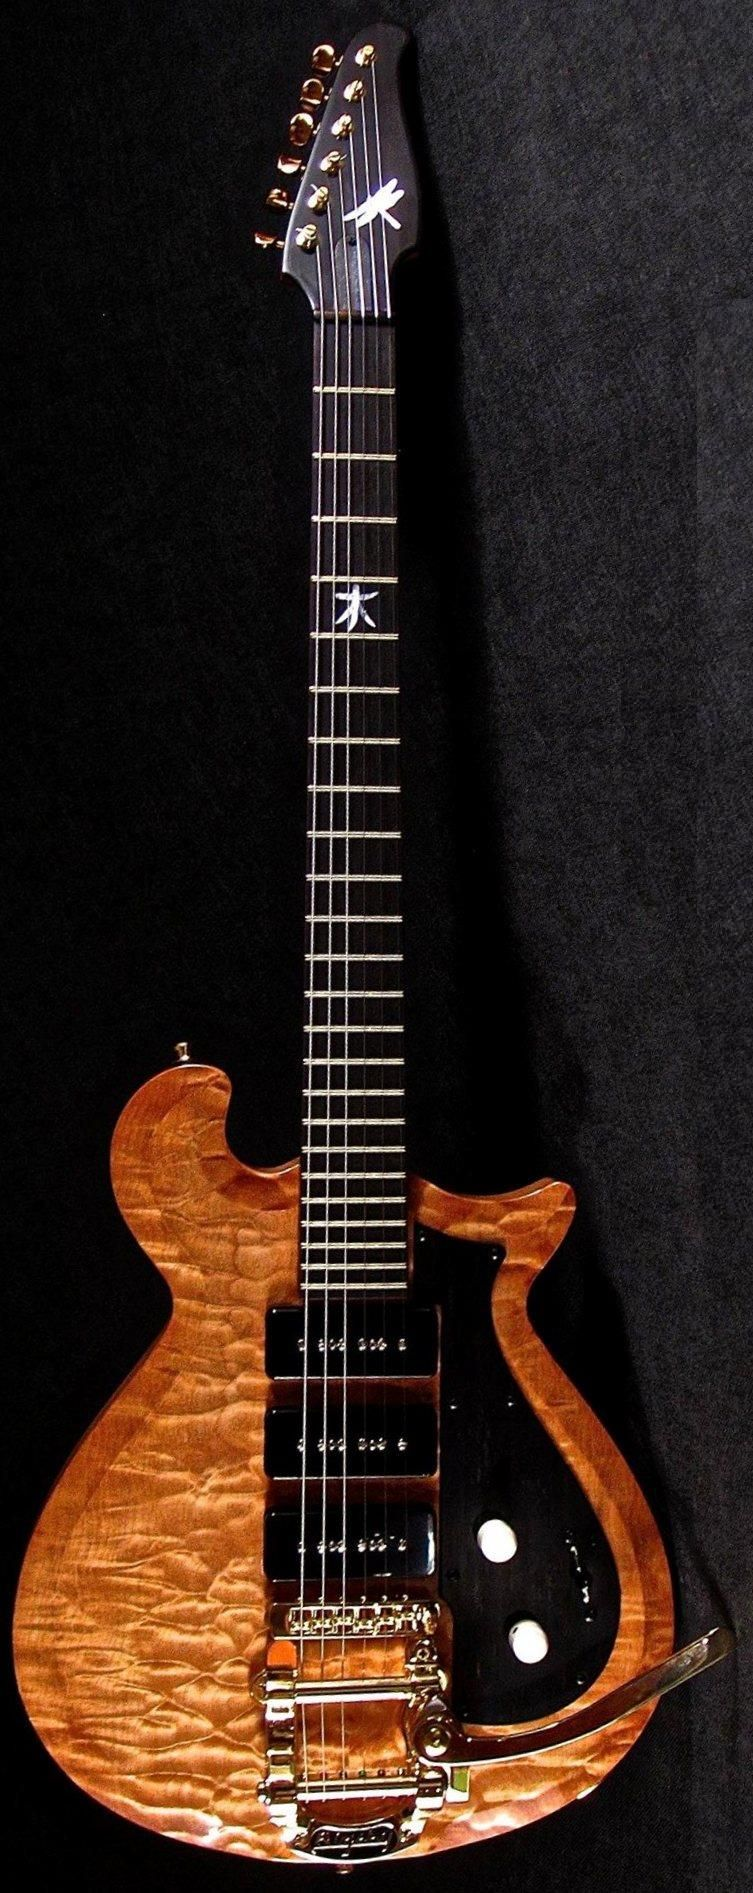 Dan Richter Dragonfly Guitars Https Www Pinterest Com Lardyfatboy Cool Electric Guitars Custom Electric Guitars Cool Guitar